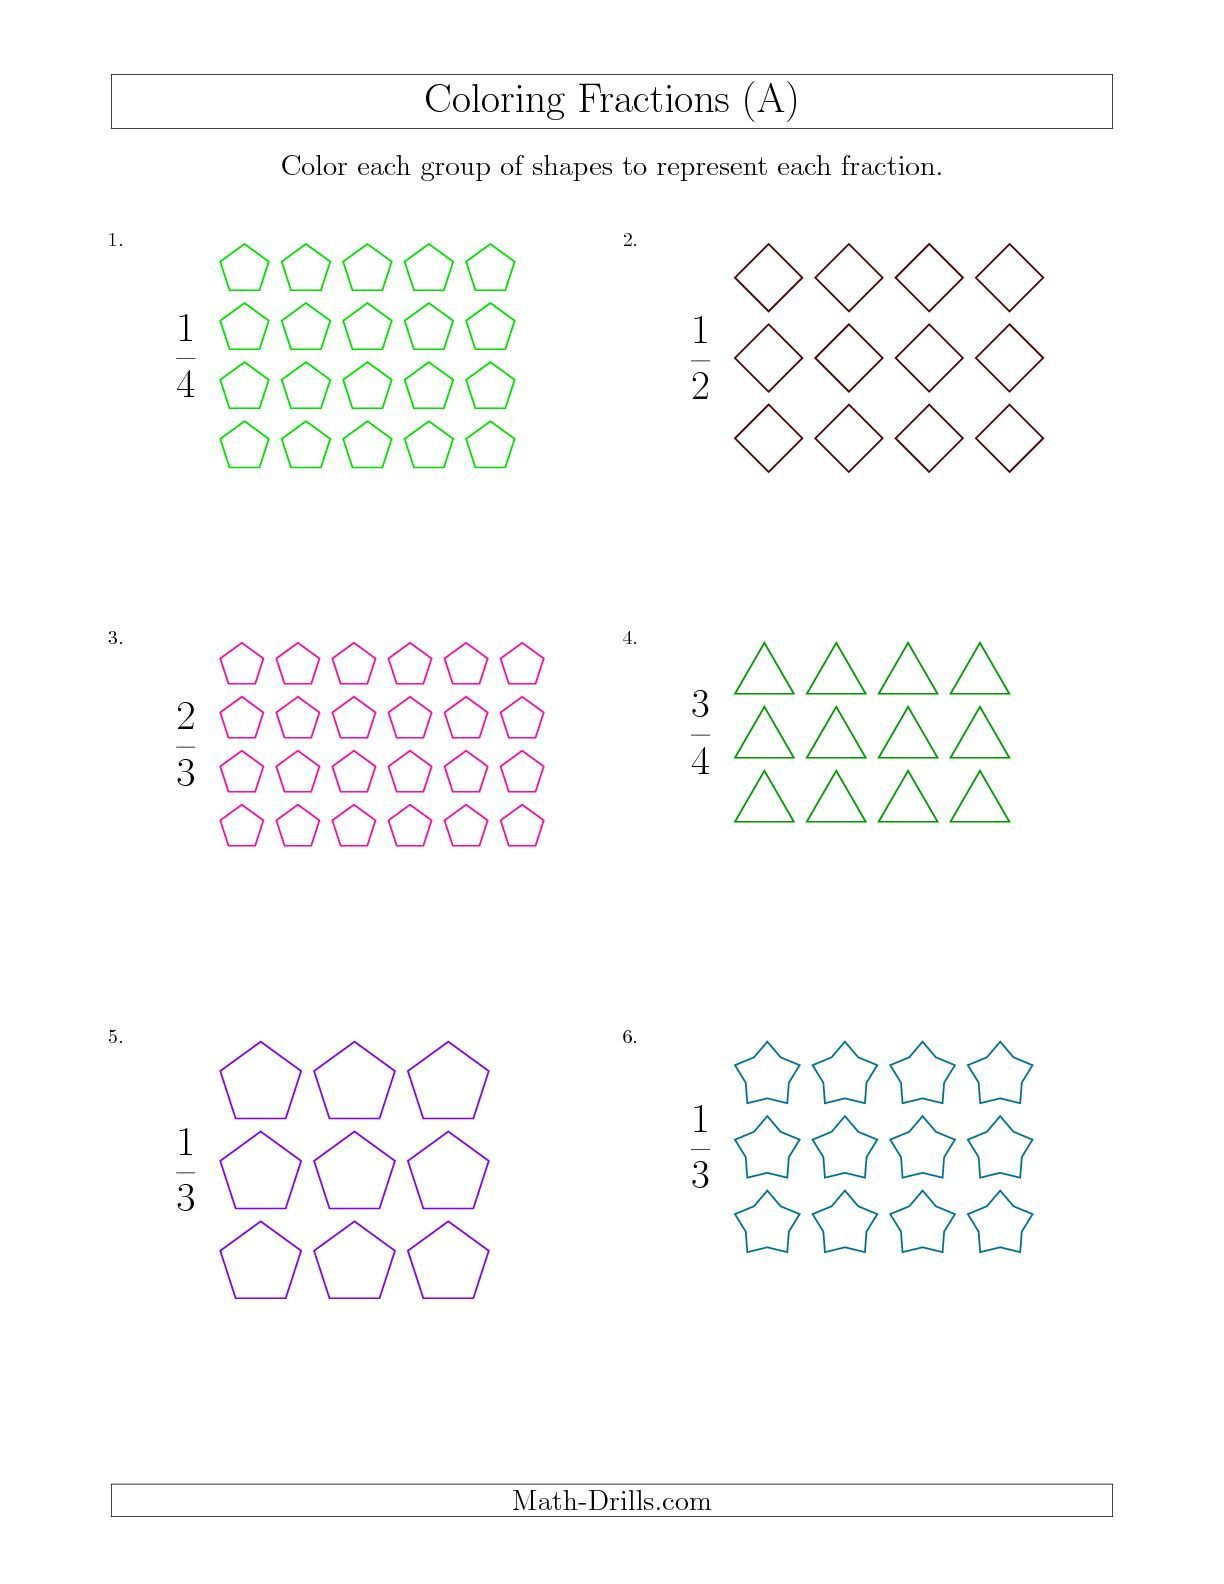 The Coloring Groups of Shapes to Represent Fractions (A) math ...